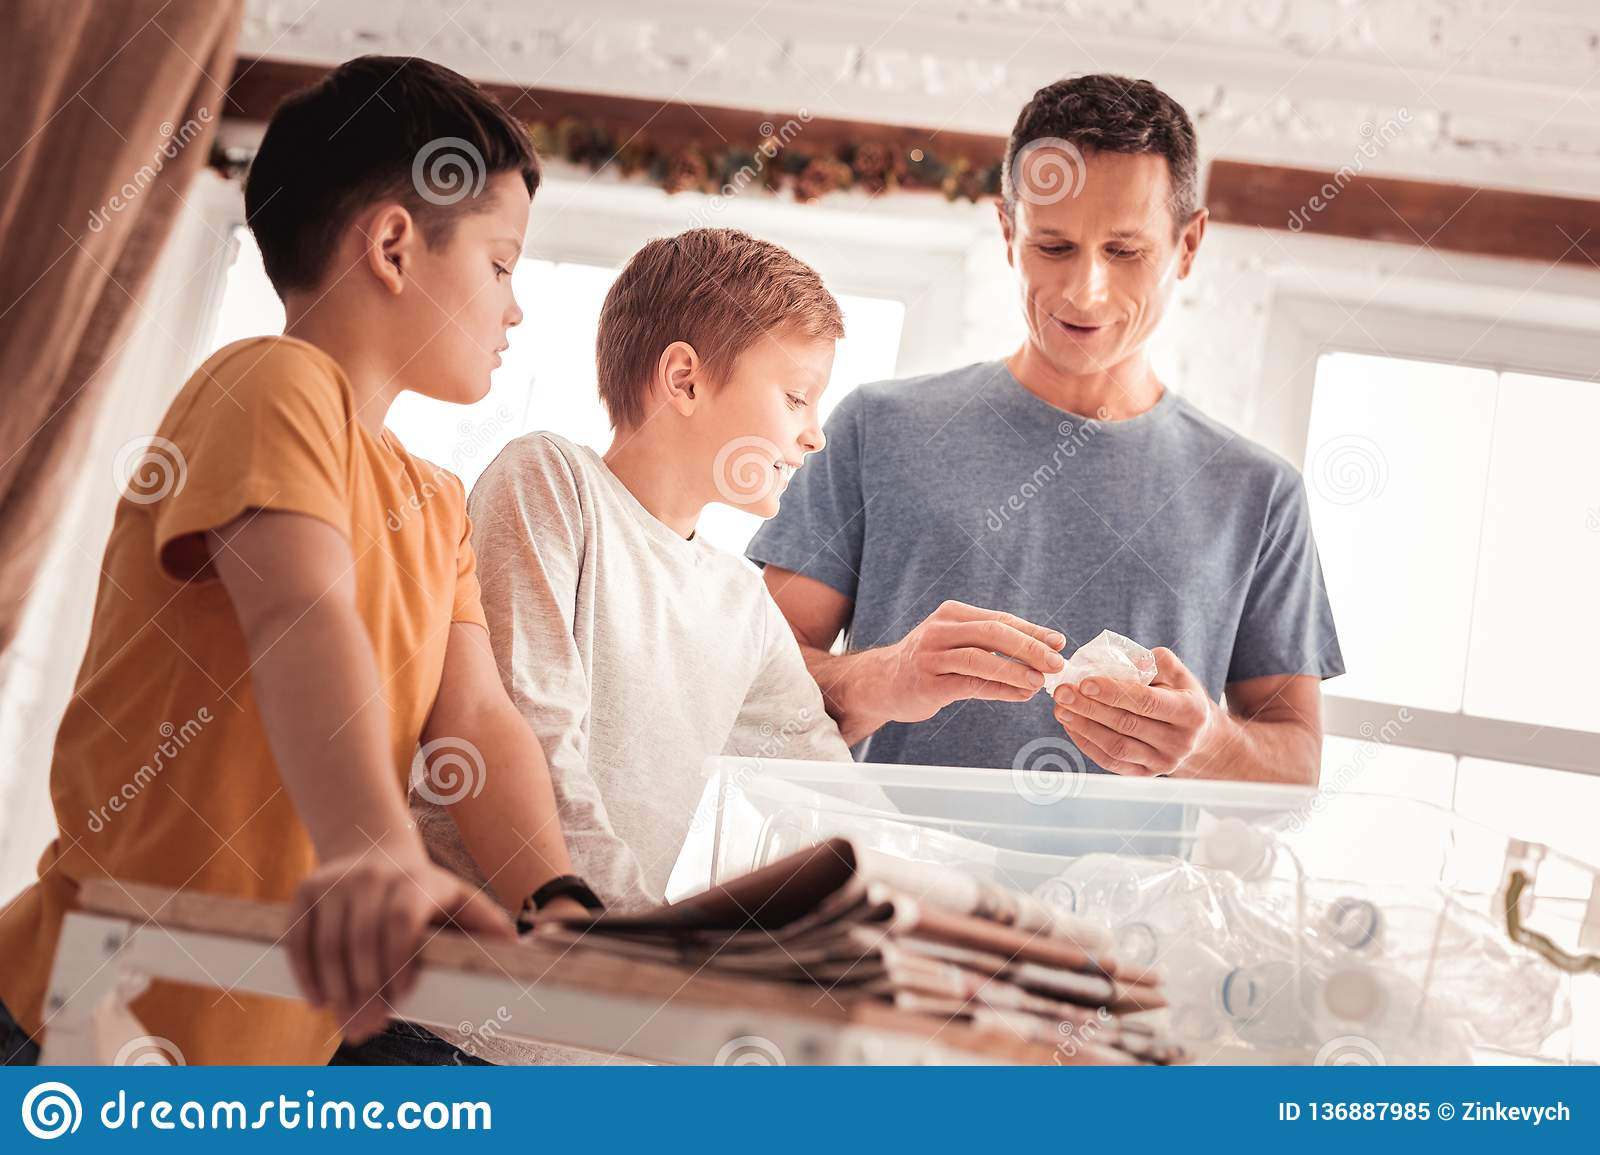 Father wearing blue shirt telling his sons about waste sorting